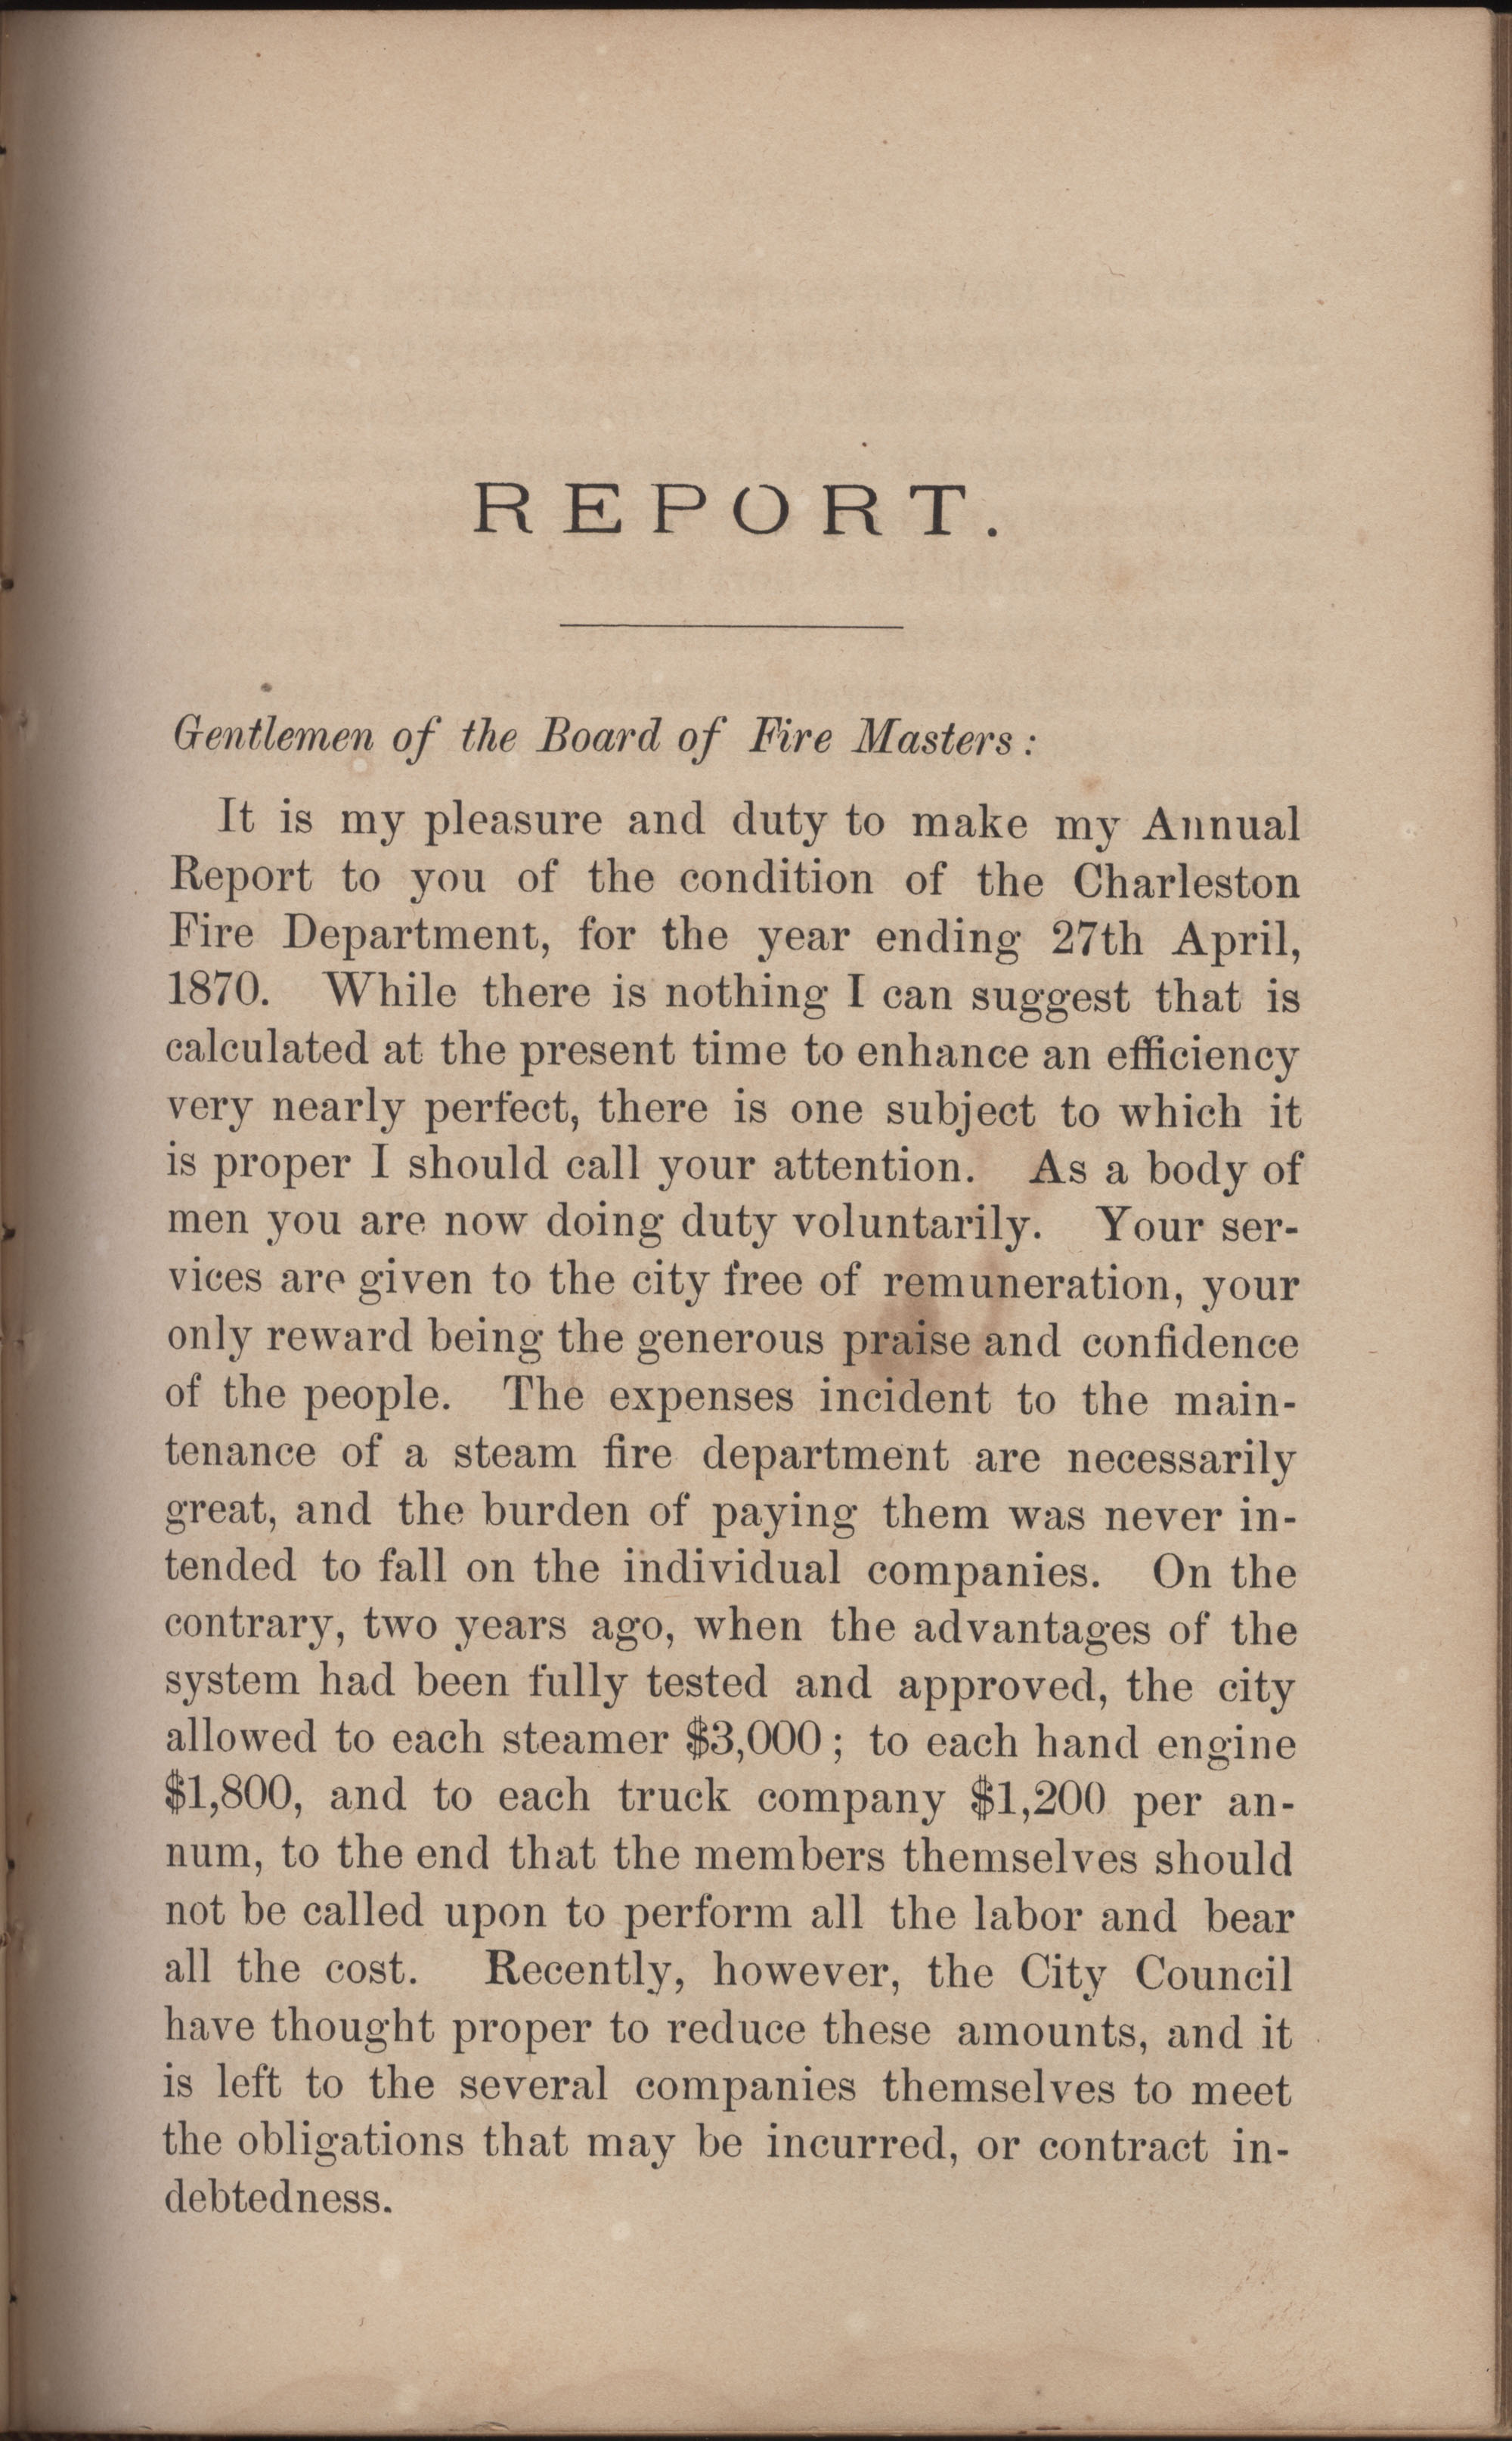 Annual Report of the Chief of the Fire Department of the City of Charleston, page 296